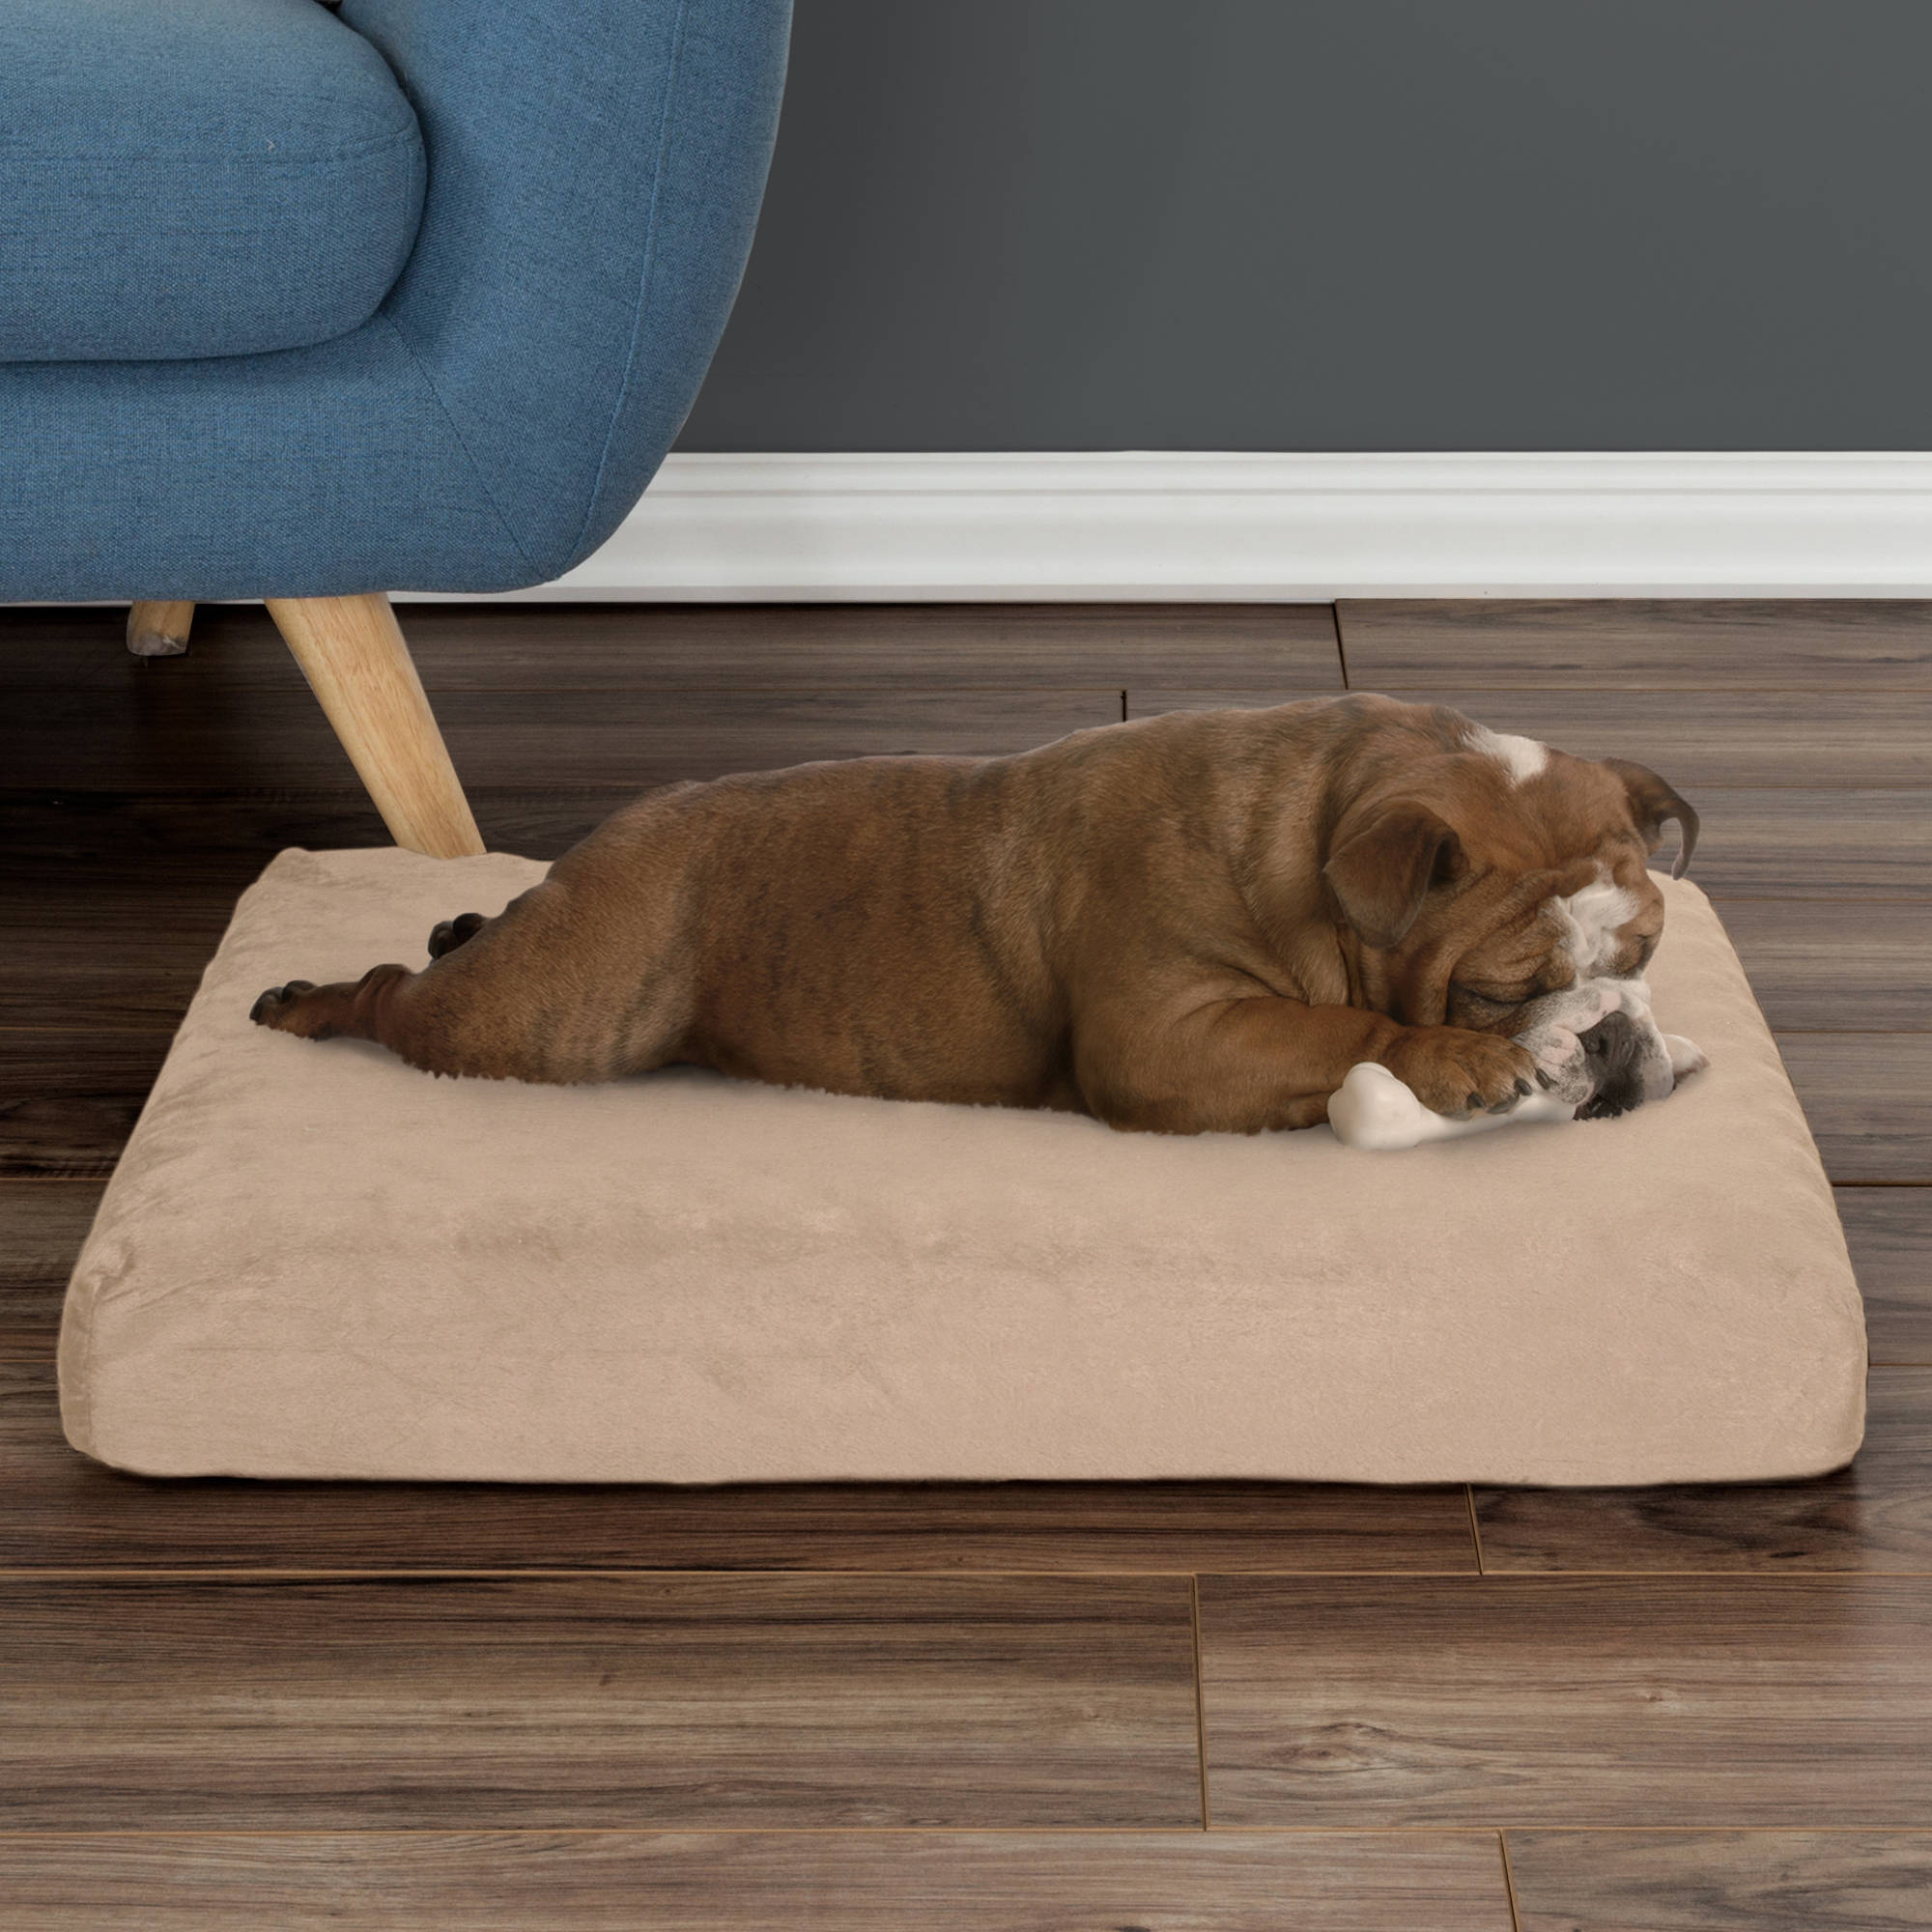 Orthopedic Memory Foam Dog Bed With Removable Cover by PETMAKER